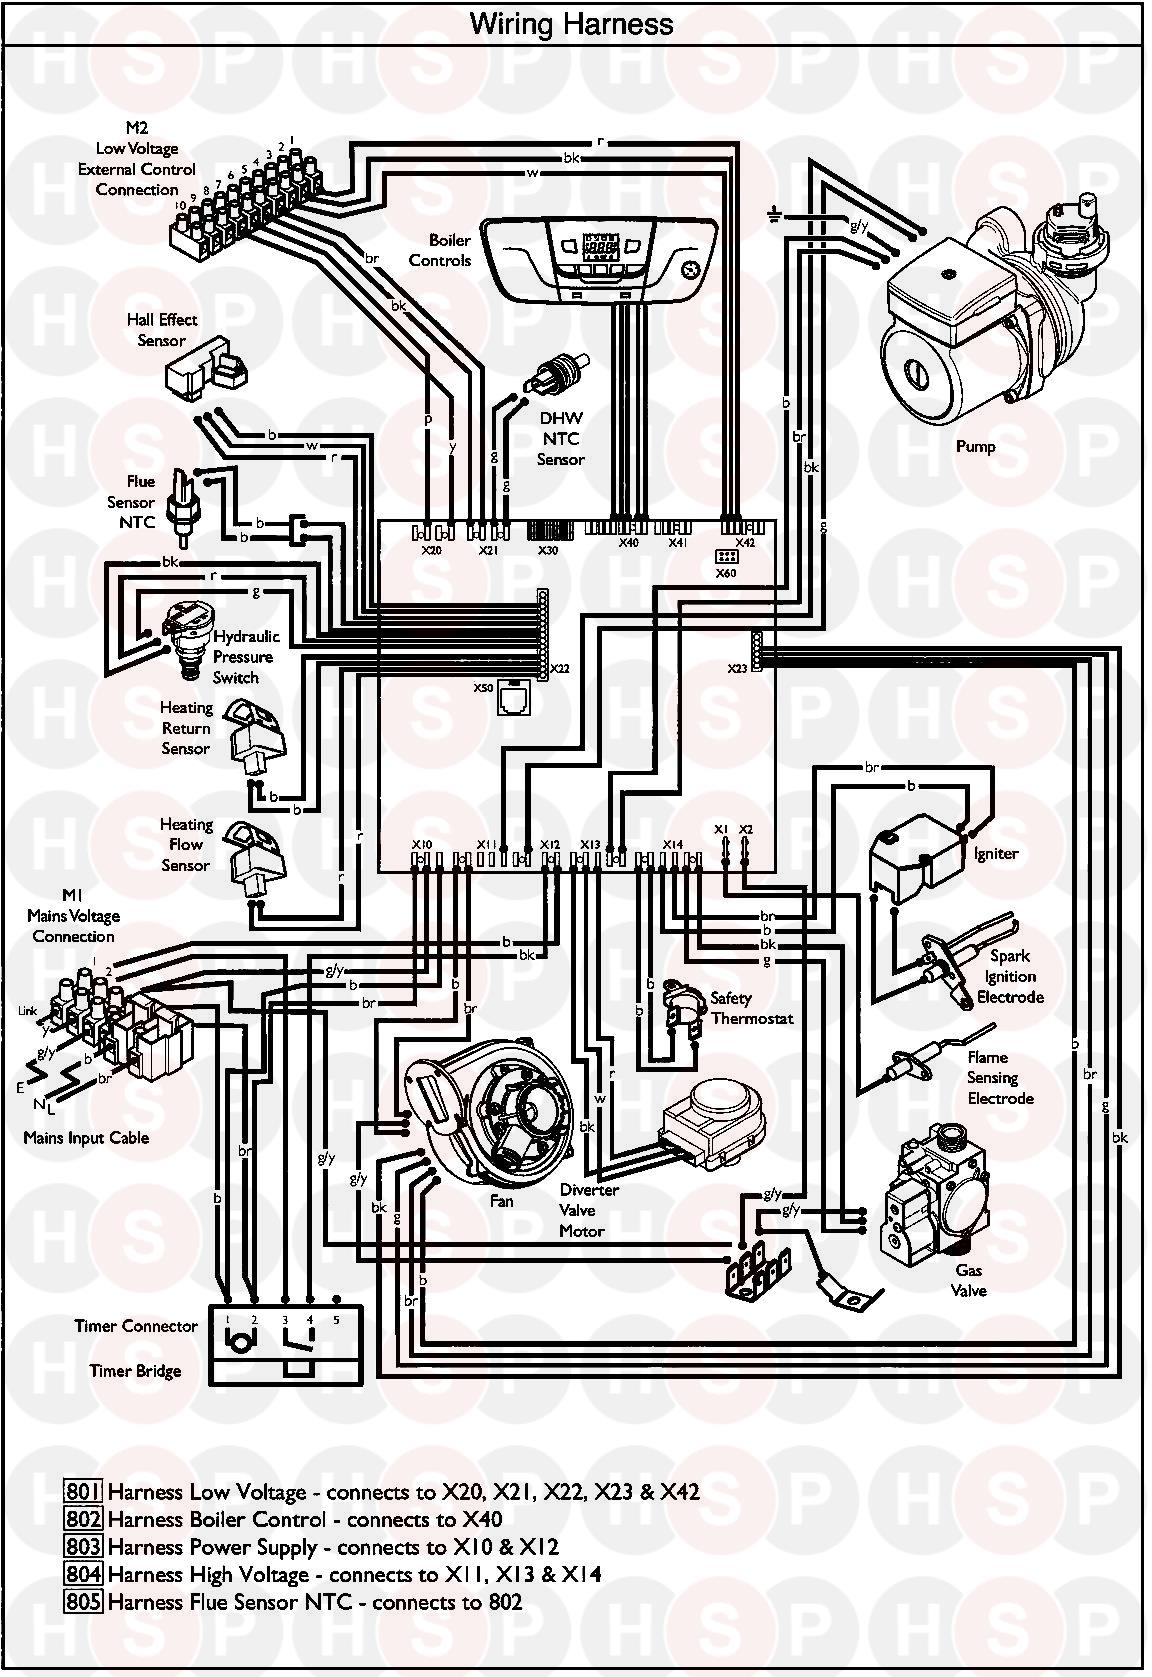 Gas Boiler Wiring - Free Wiring Diagram For You • on service wiring diagram, steam boilers old house, engineering wiring diagram, steam boiler accessories, pressure wiring diagram, steam boiler generator, grinder wiring diagram, boiler schematic diagram, steam boiler control diagram, steam boiler specifications, steam boiler troubleshooting, steam boiler pressure setting, steam boiler data sheet, steam boiler door, residential boiler diagram, evaporator wiring diagram, boiler and storage tank installation diagram, commercial boiler diagram, electric steam boiler diagram, steam boiler lighting,